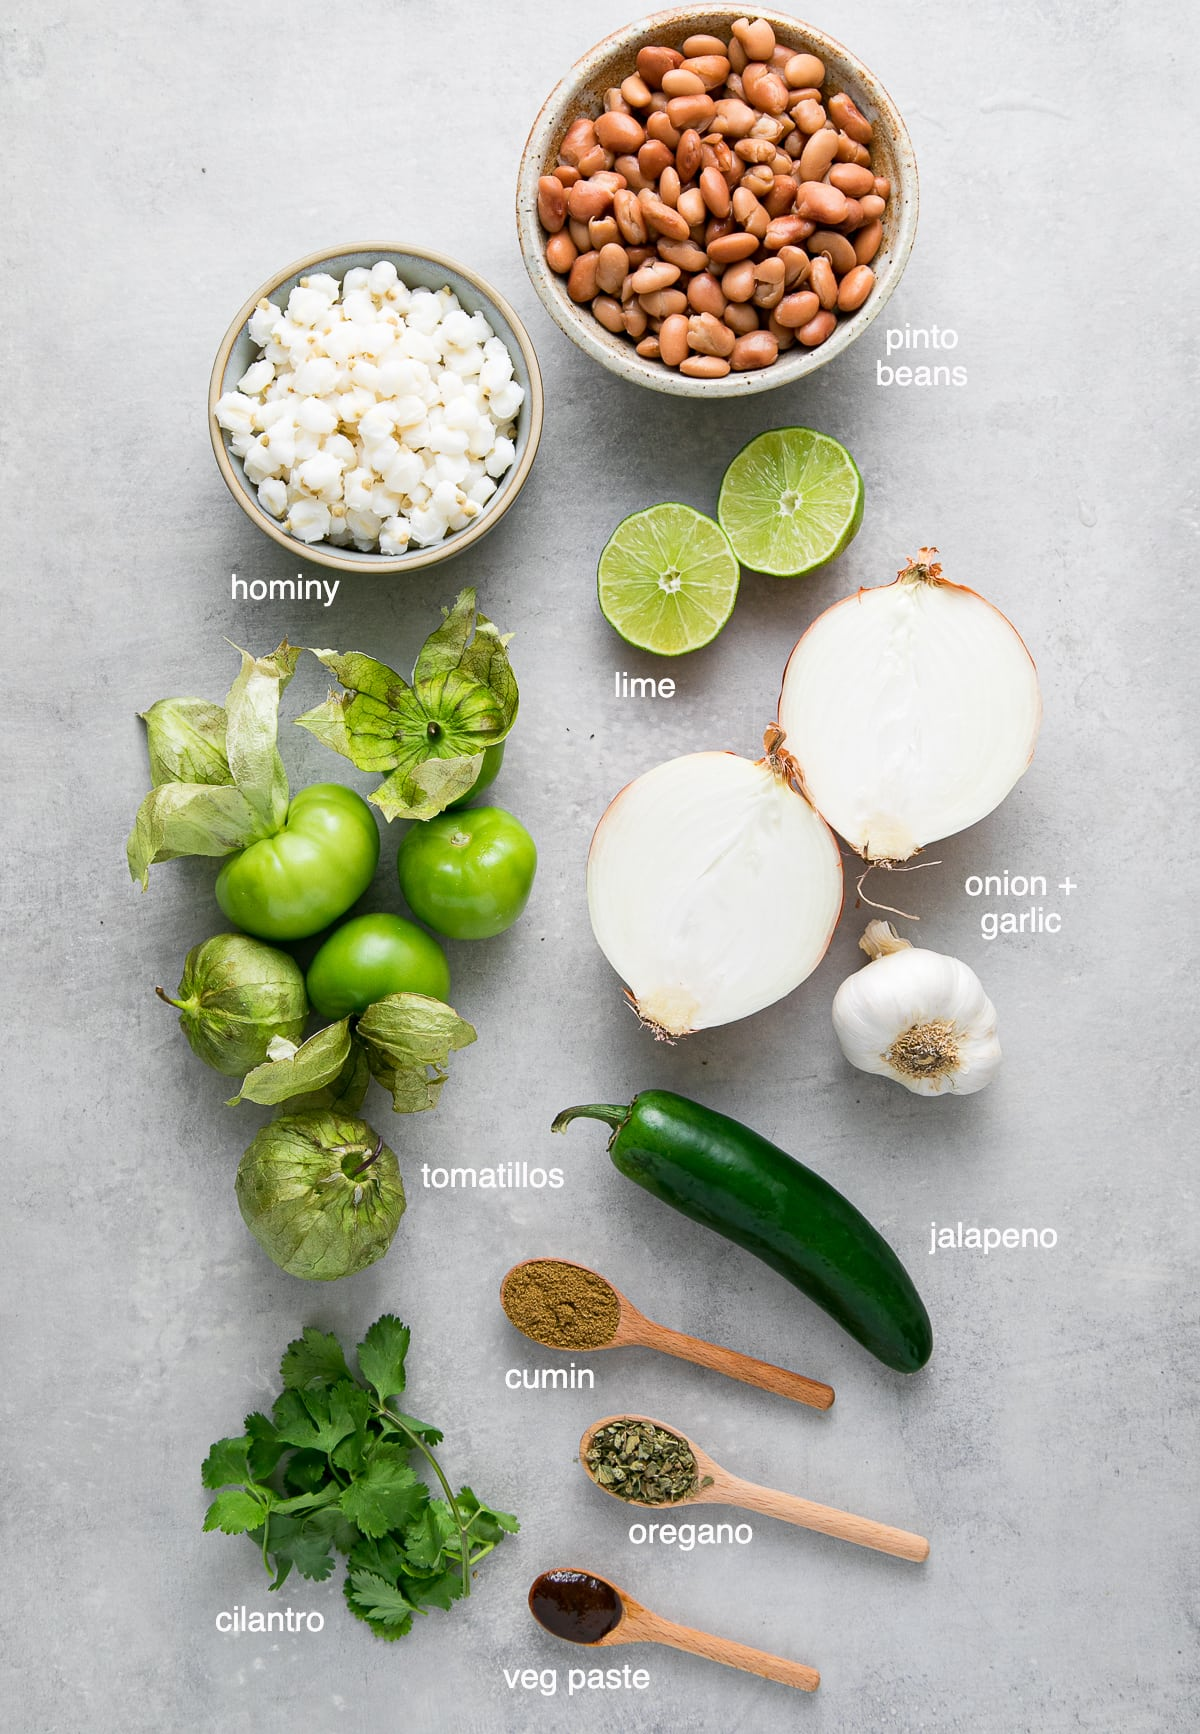 top down view of ingredients used to make posole verde with pinto beans and tomatillos.